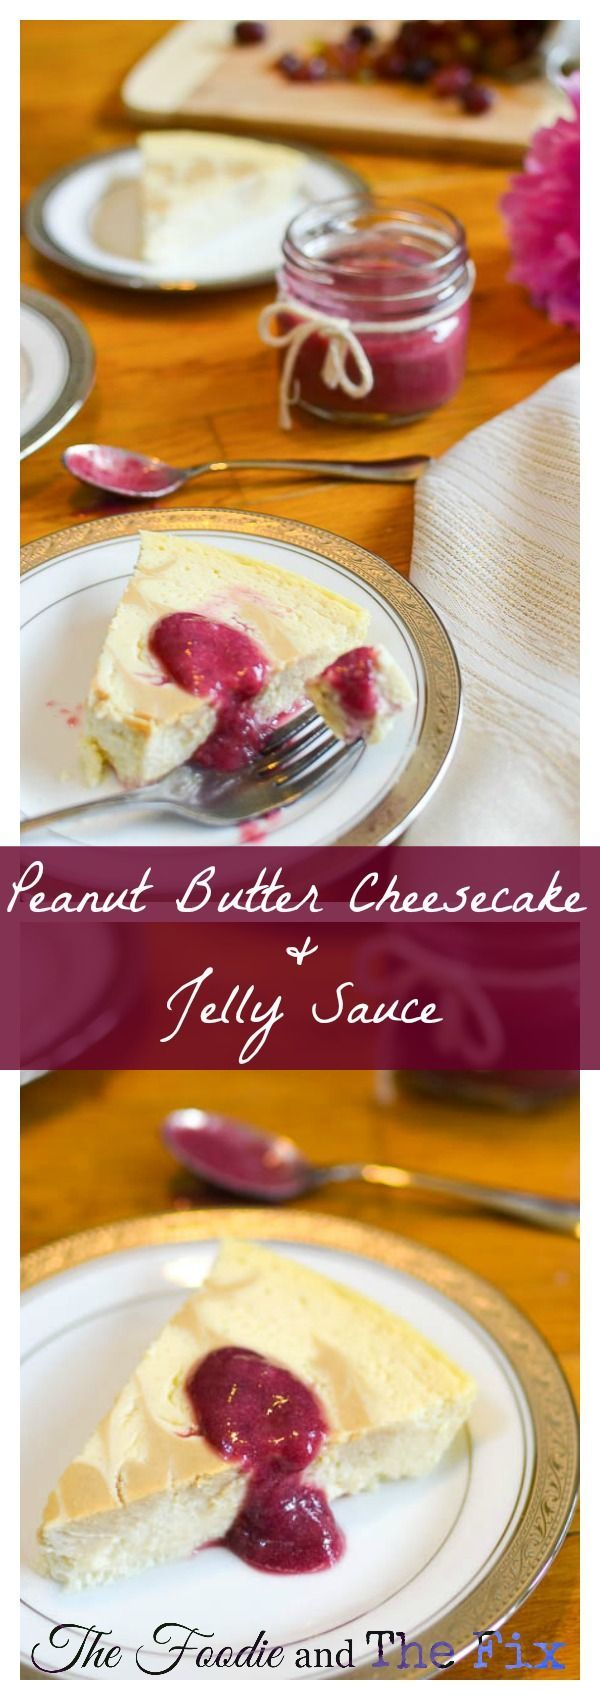 Peanut Butter Cheesecake & Jelly Sauce - A delicious AND healthy (yes, healthy!) dessert recipe that'll bring out the kid in you! 21 Day Fix approved, too ;-)